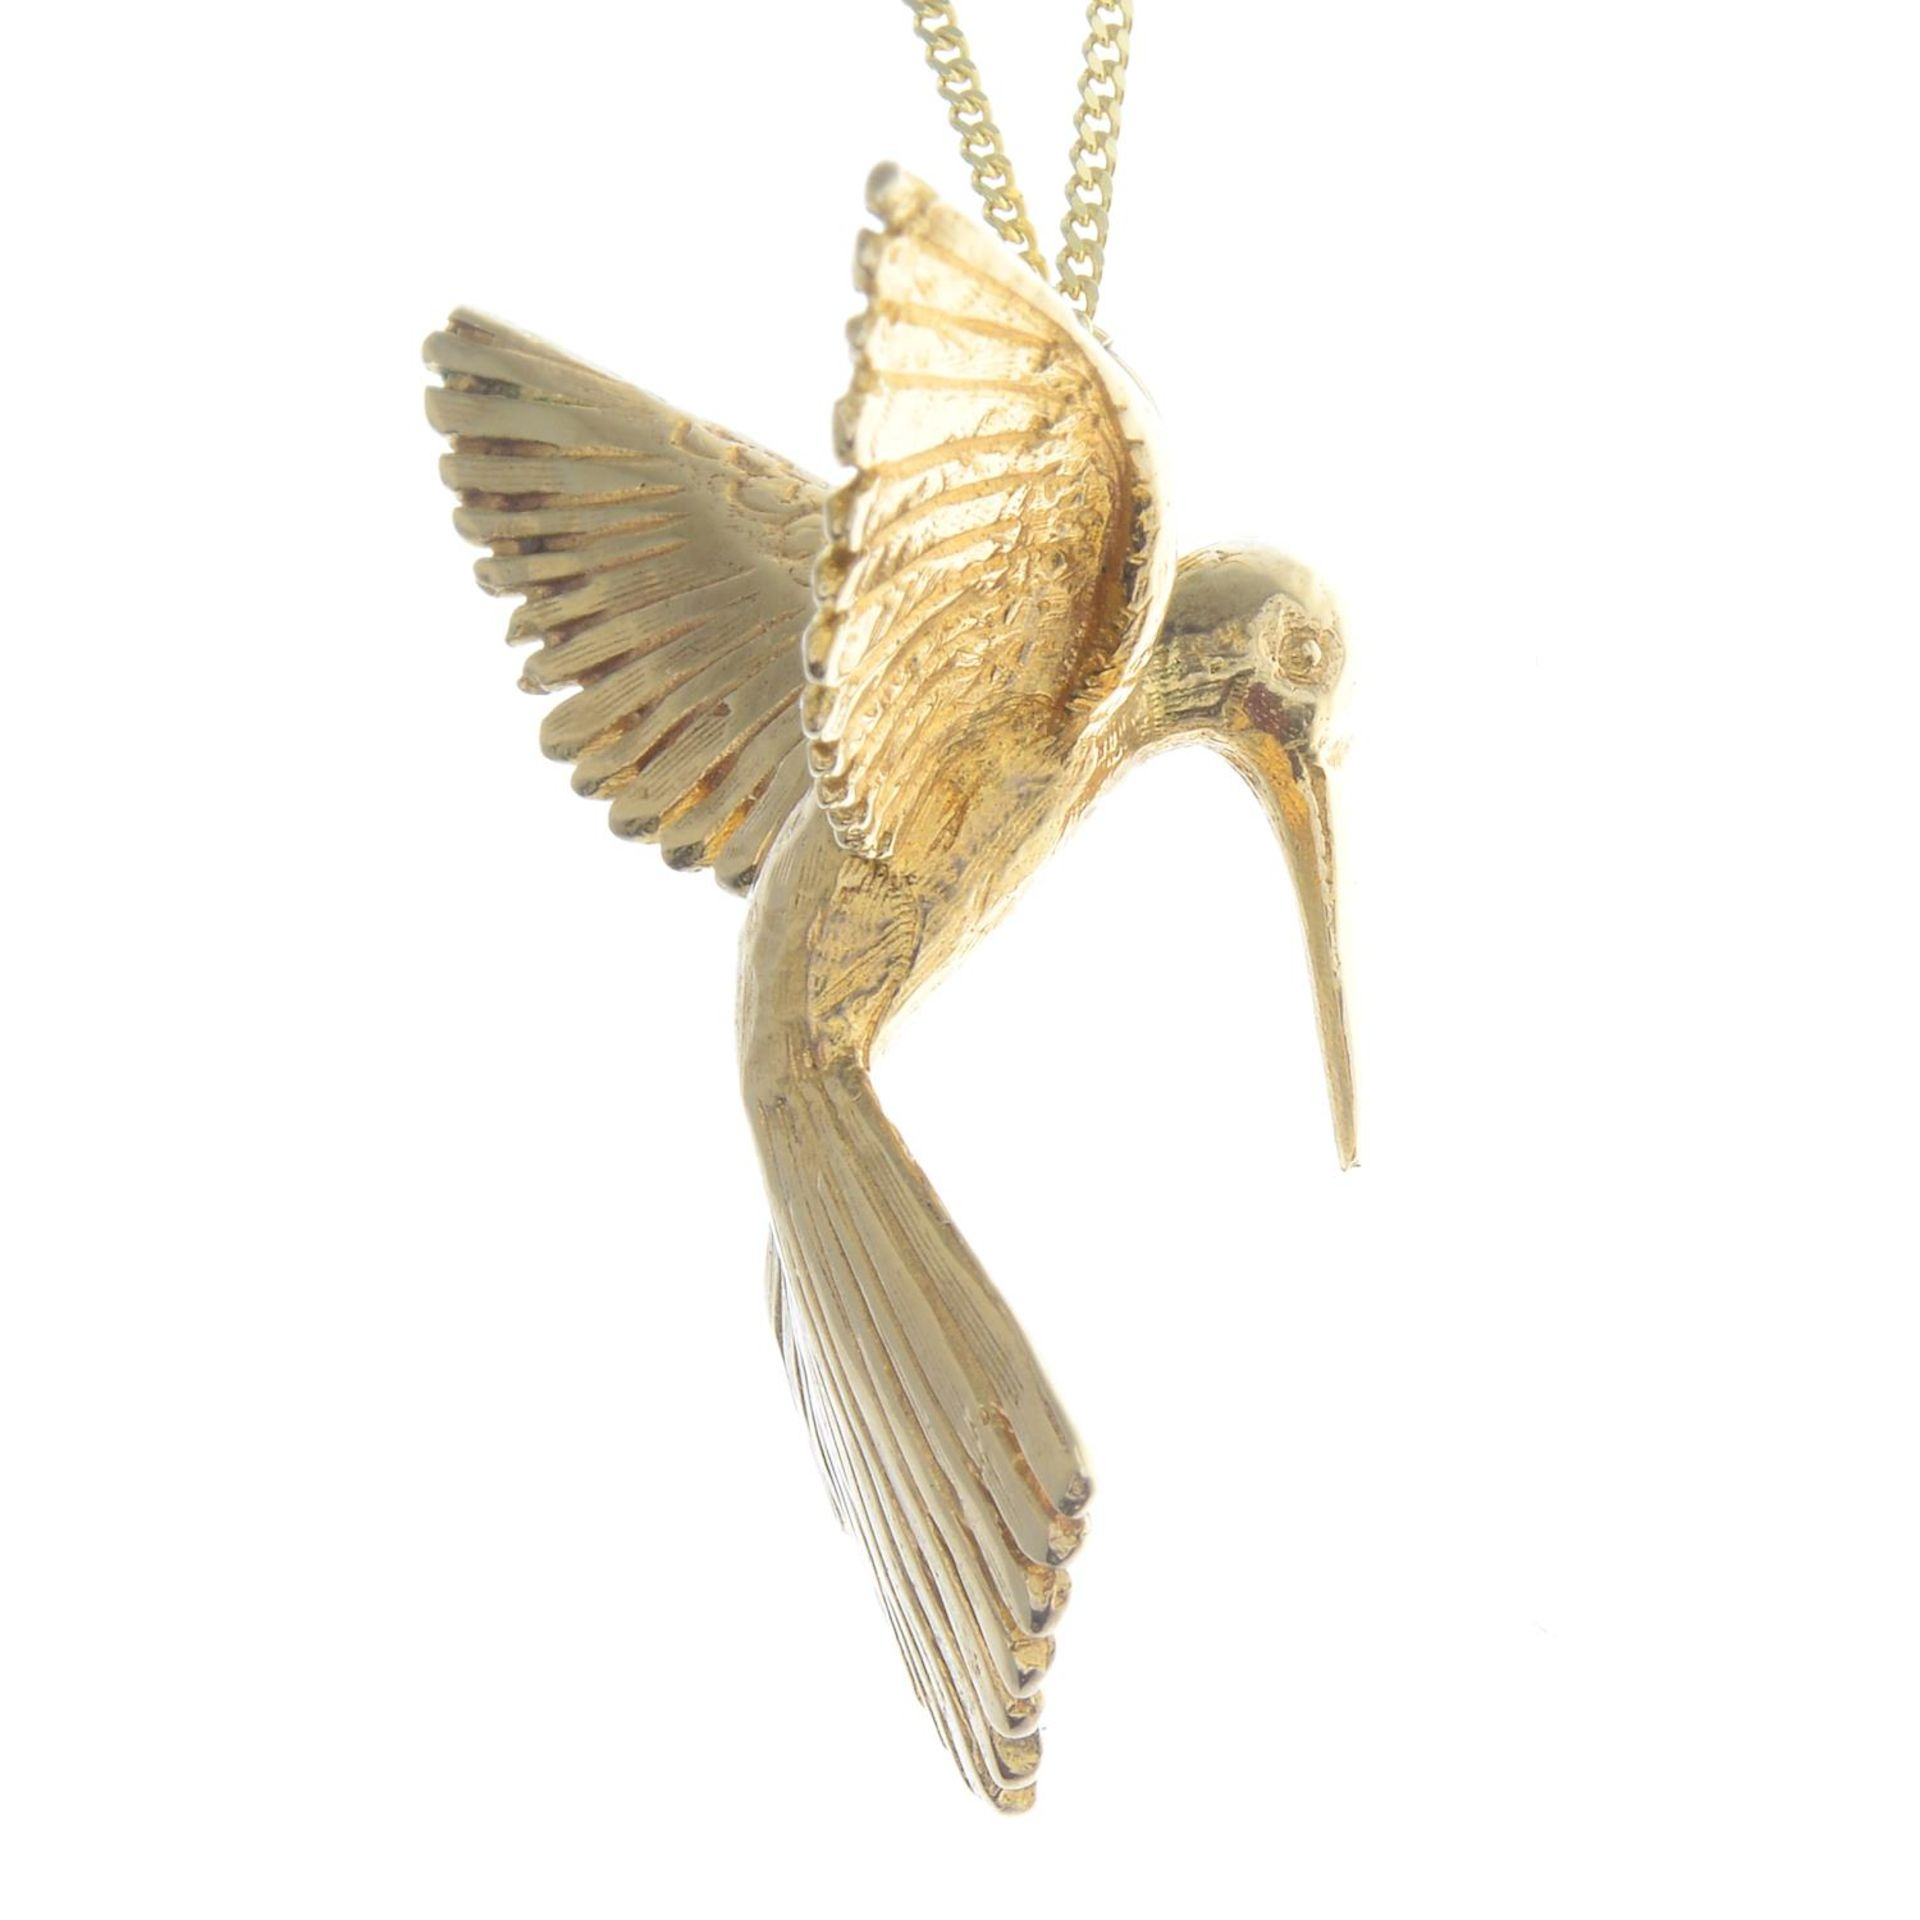 A pendant, depicting a textured hummingbird in flight, with 9ct gold chain. - Bild 2 aus 3